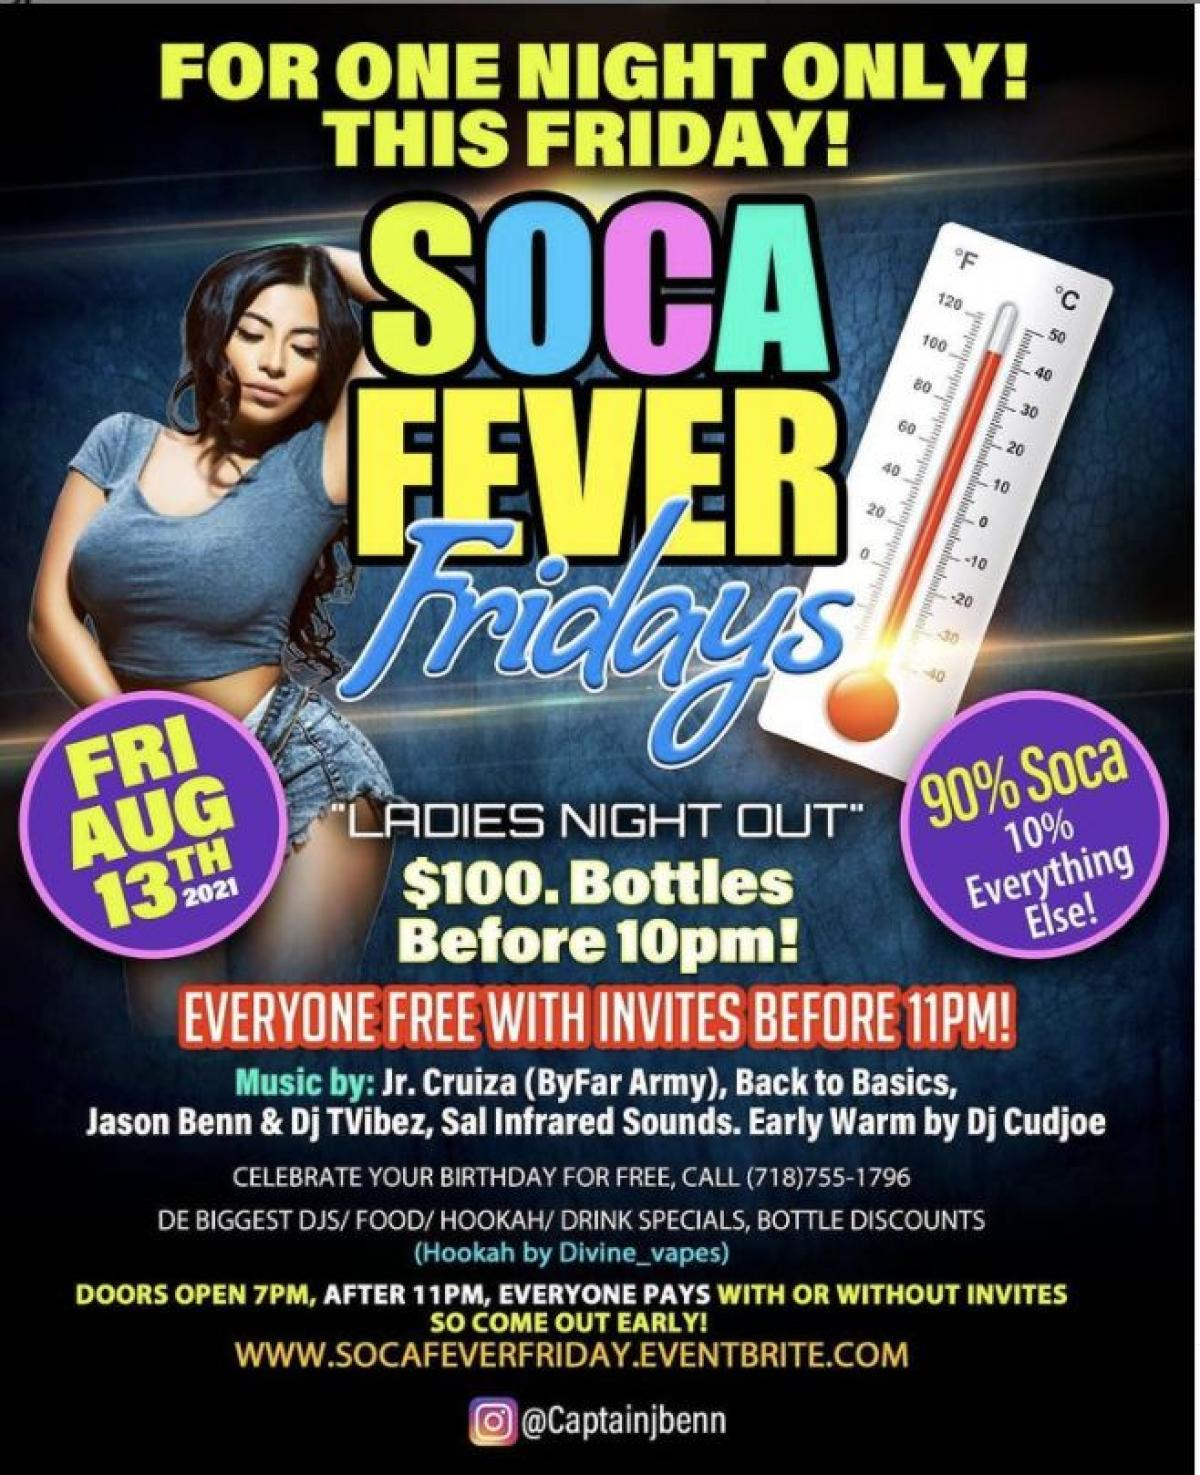 Soca Fever Friday  flyer or graphic.